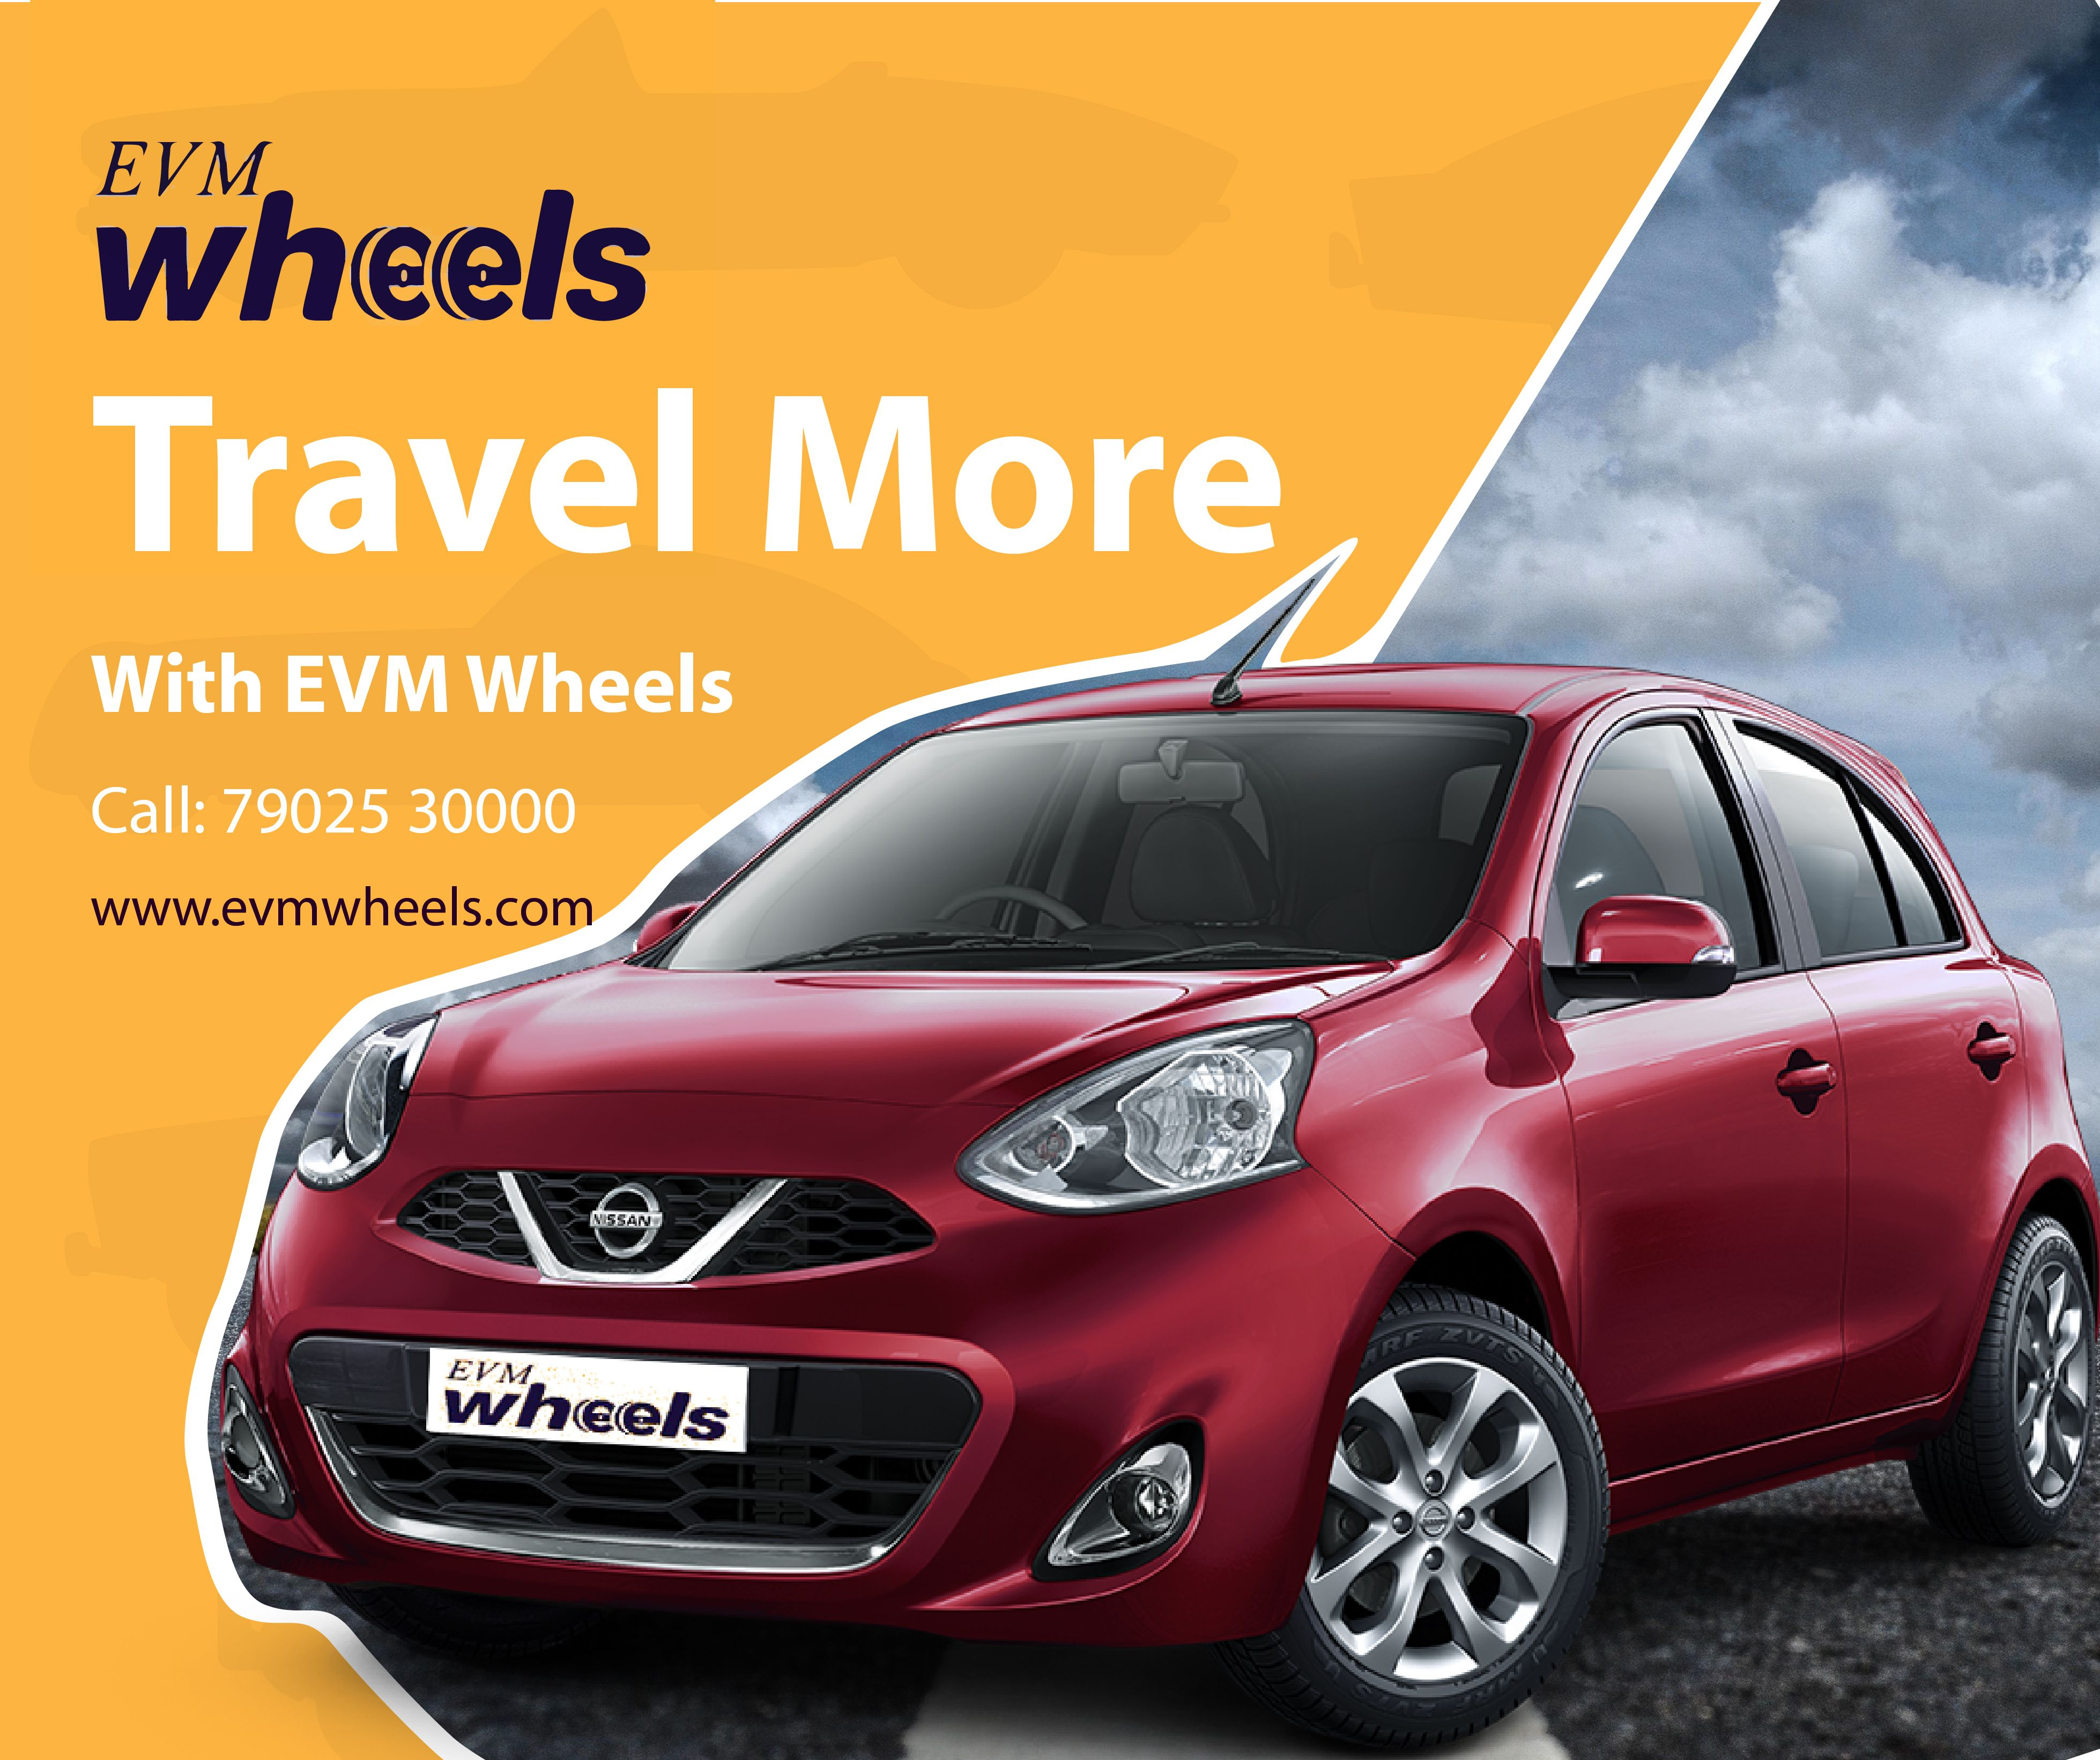 Need Wheels On Your Next Trip Renting A Car Can Give You Freedom